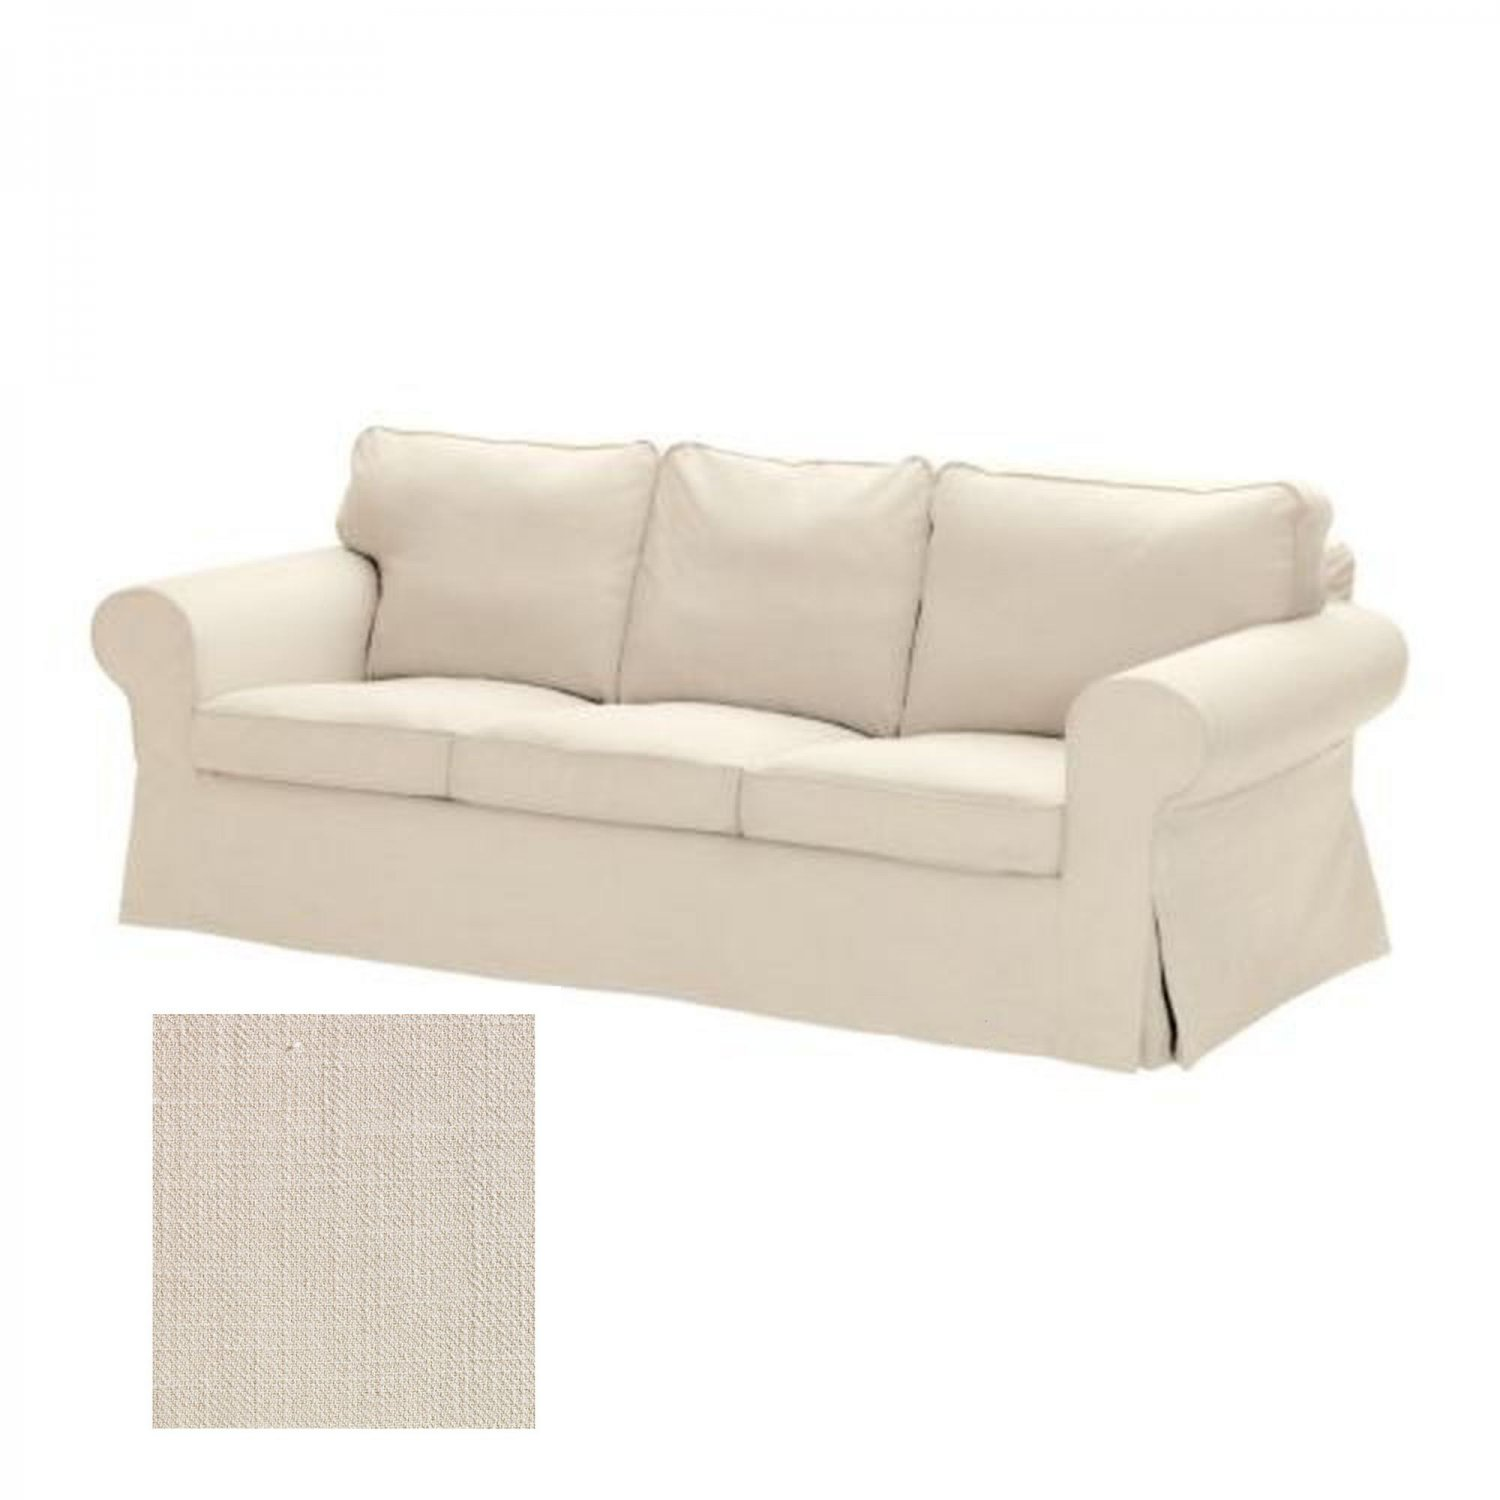 IKEA EKTORP 3 Seat Sofa SLIPCOVER Cover SVANBY BEIGE Linen  : 558209739a32754622b from rock-paper-scissors.ecrater.com size 1500 x 1500 jpeg 114kB